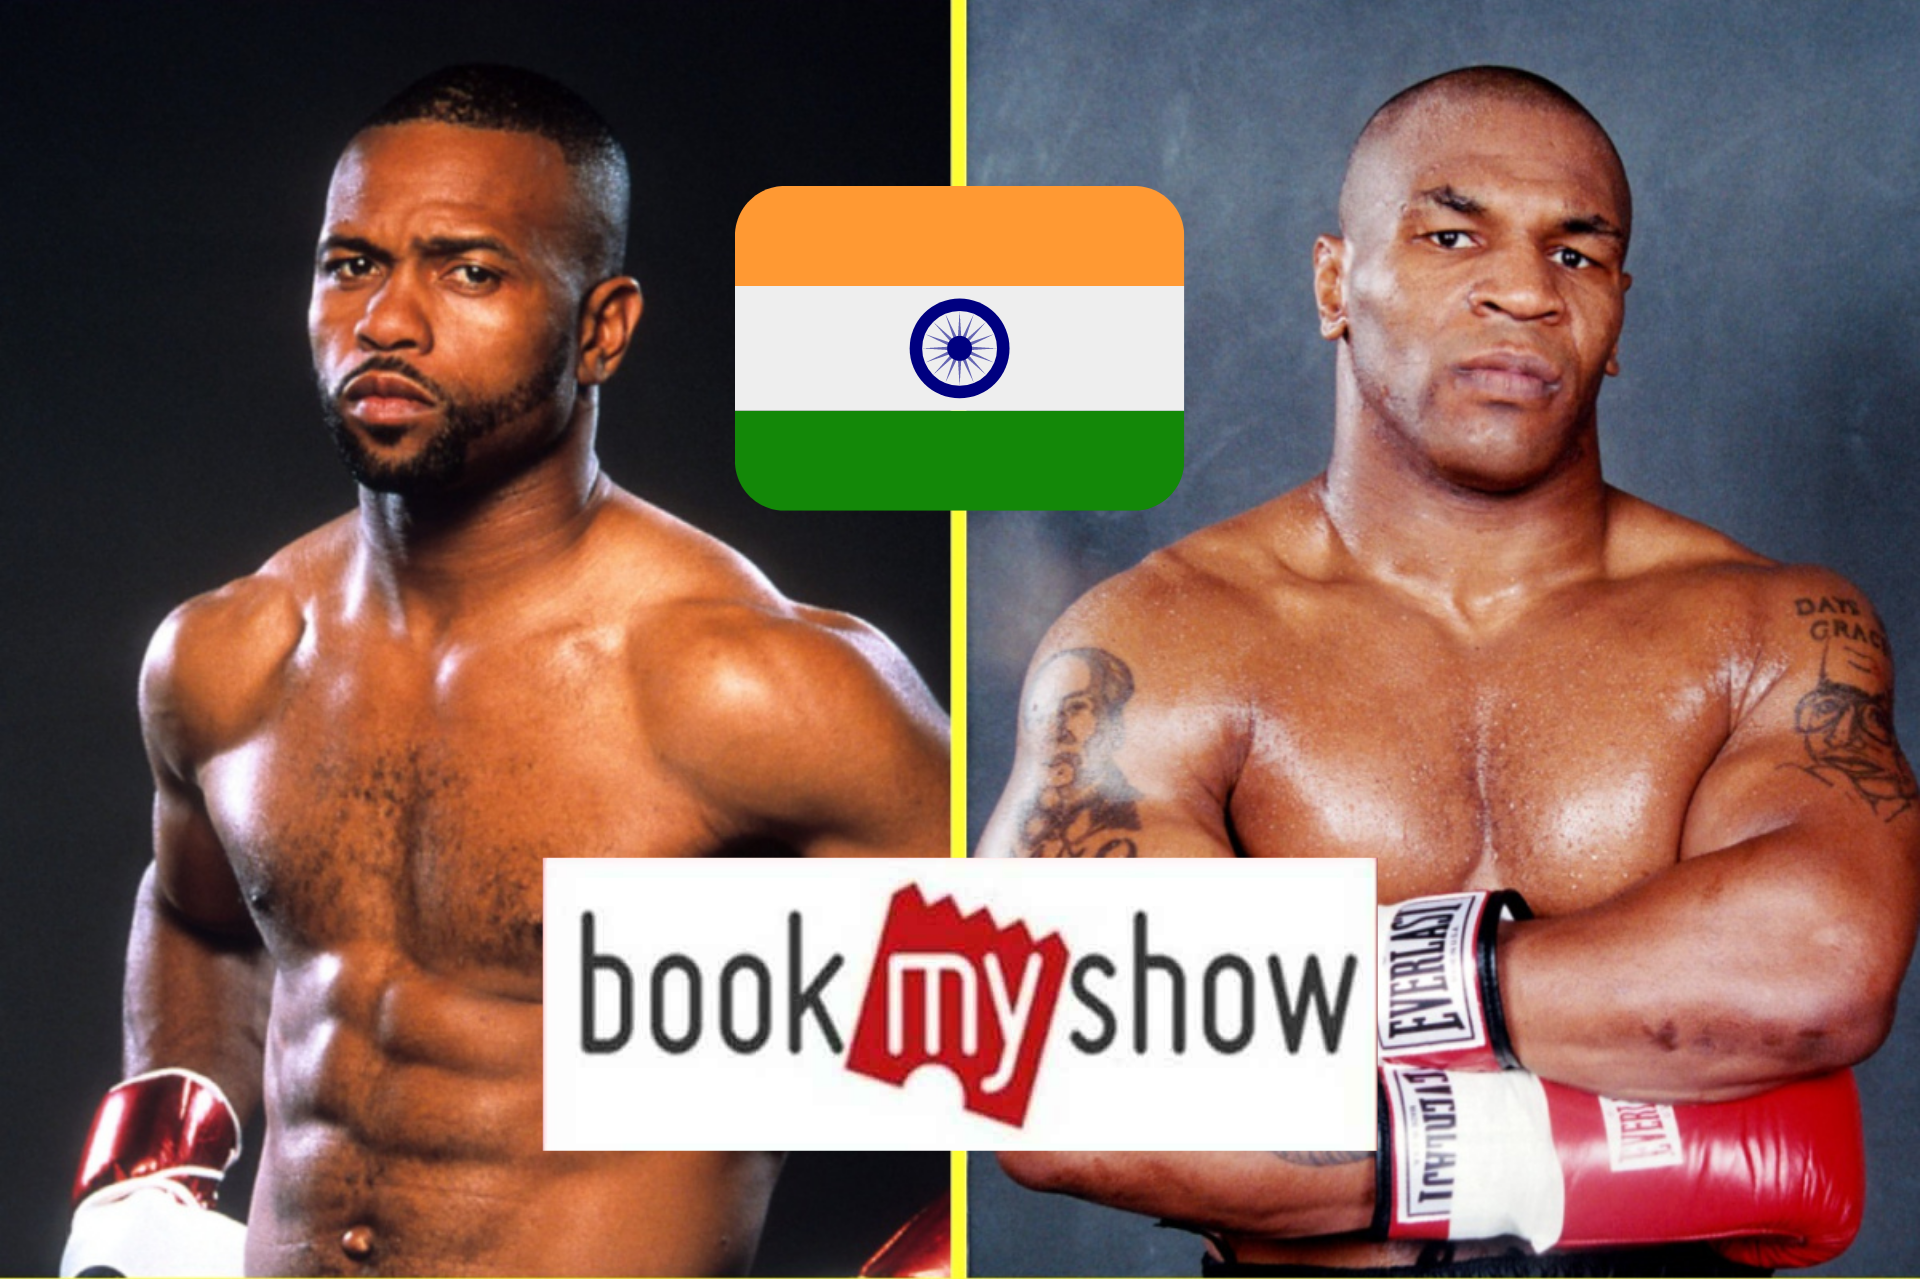 Mike Tyson vs Roy Jones Jr will be available in India on BookMyShow - Tyson